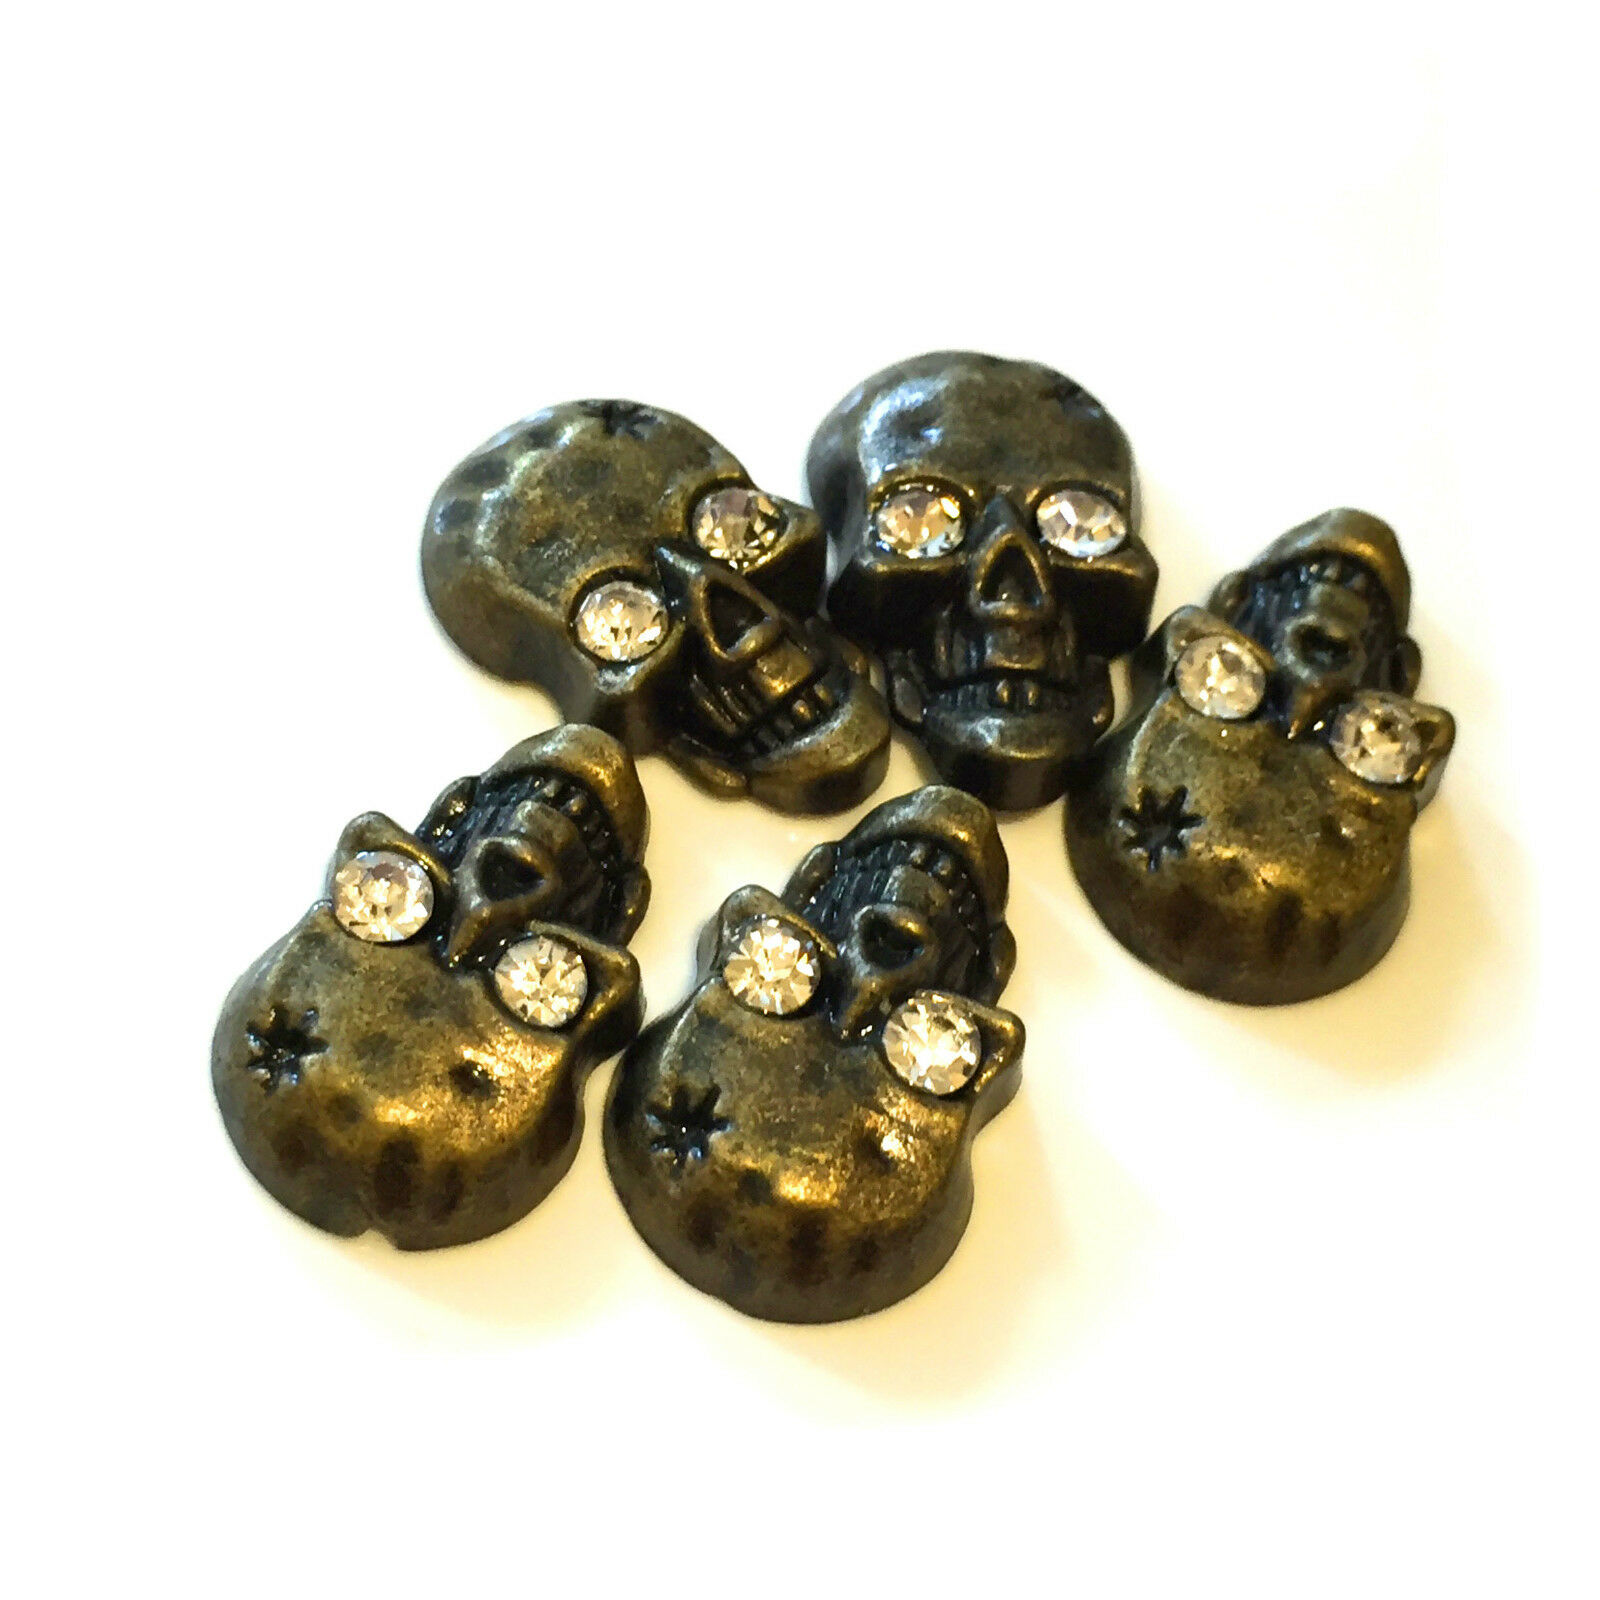 Iron-on Hot-Fix Metal Skull Studs with Diamante//Diamonds shoes Bags Belts Jeans